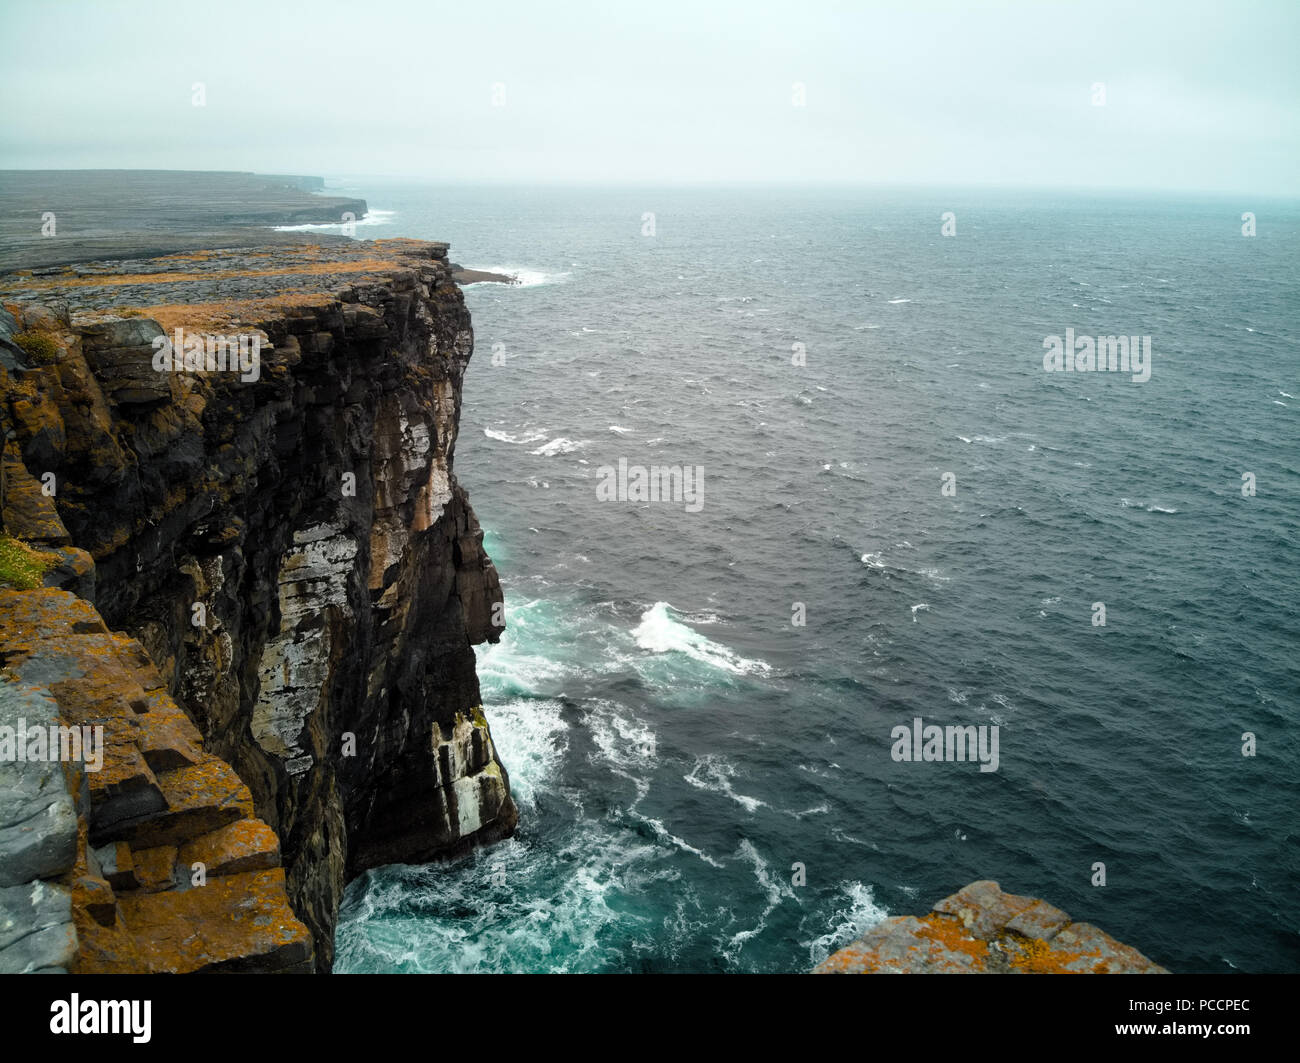 Aran Island - Inish More west side cliffs in cold rainy weather. Weaves hitting the rock again and again. - Stock Image